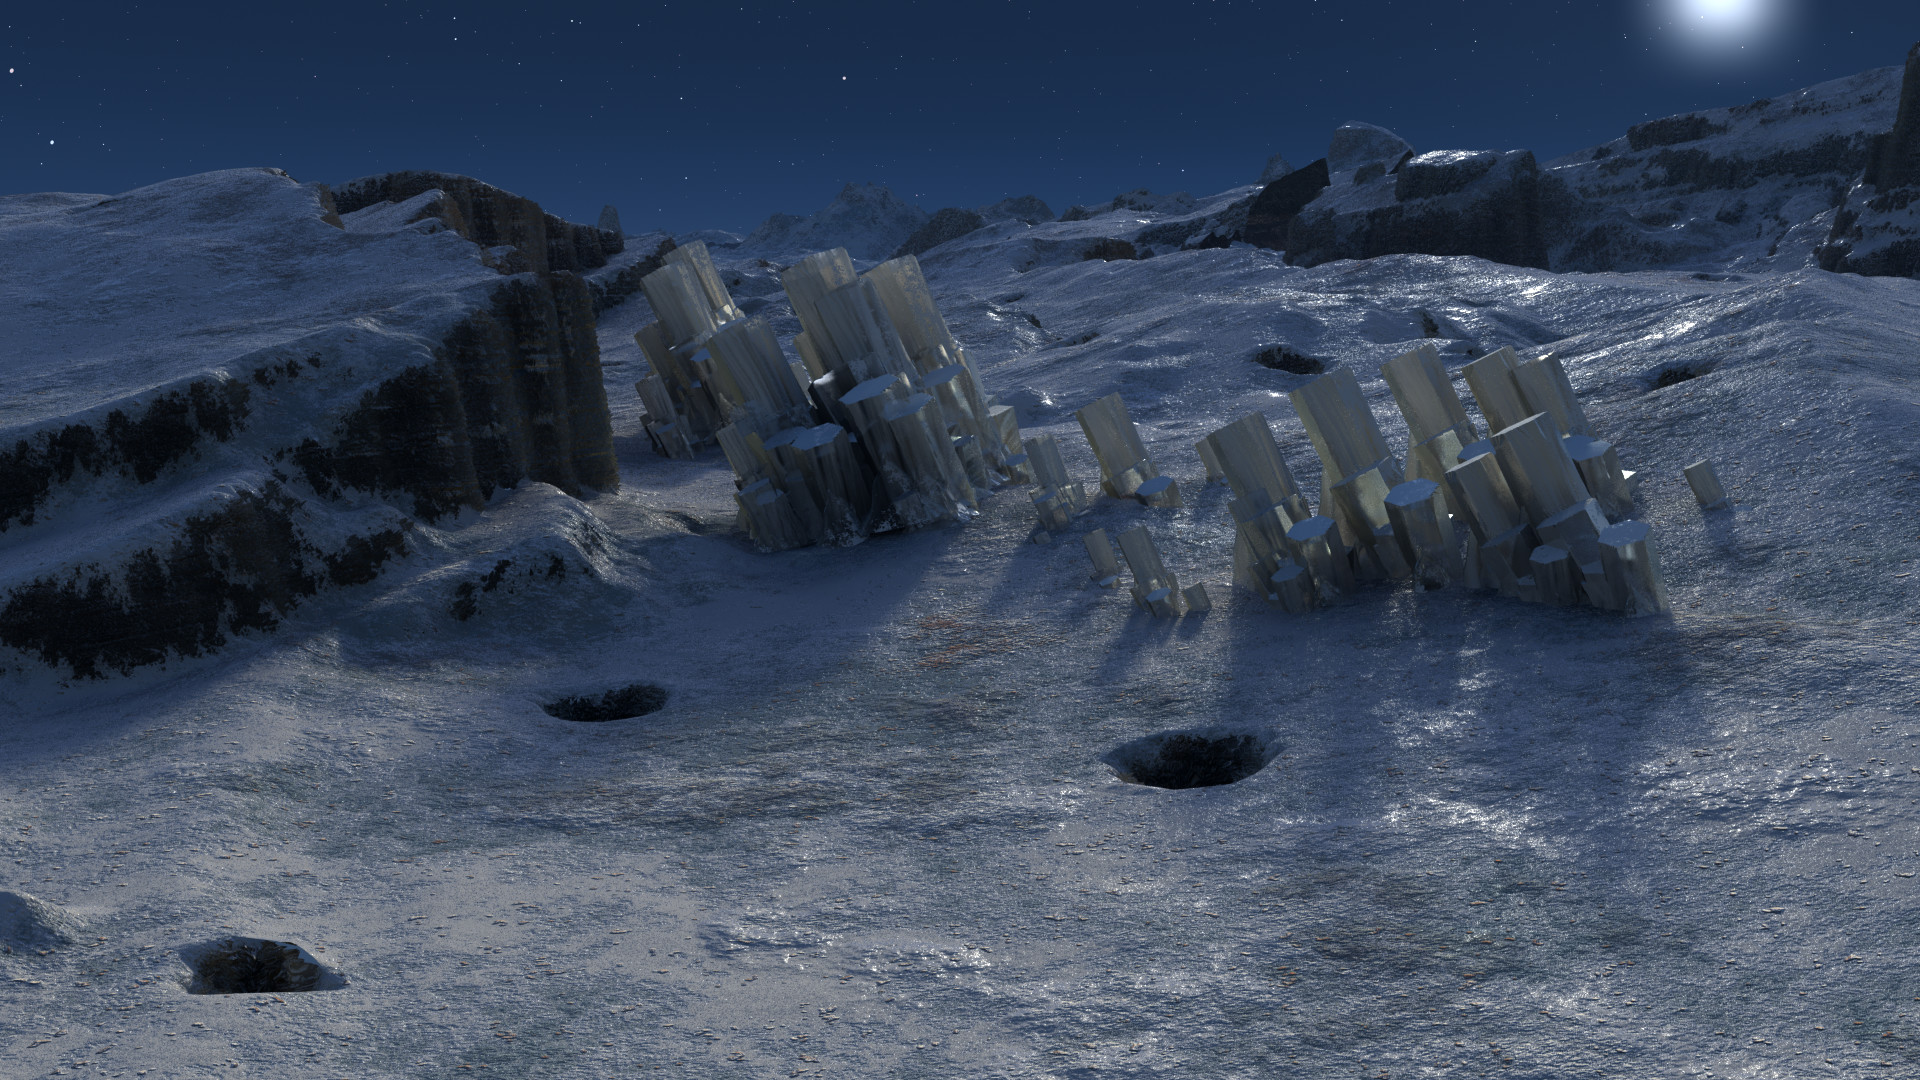 Early render test of textures.